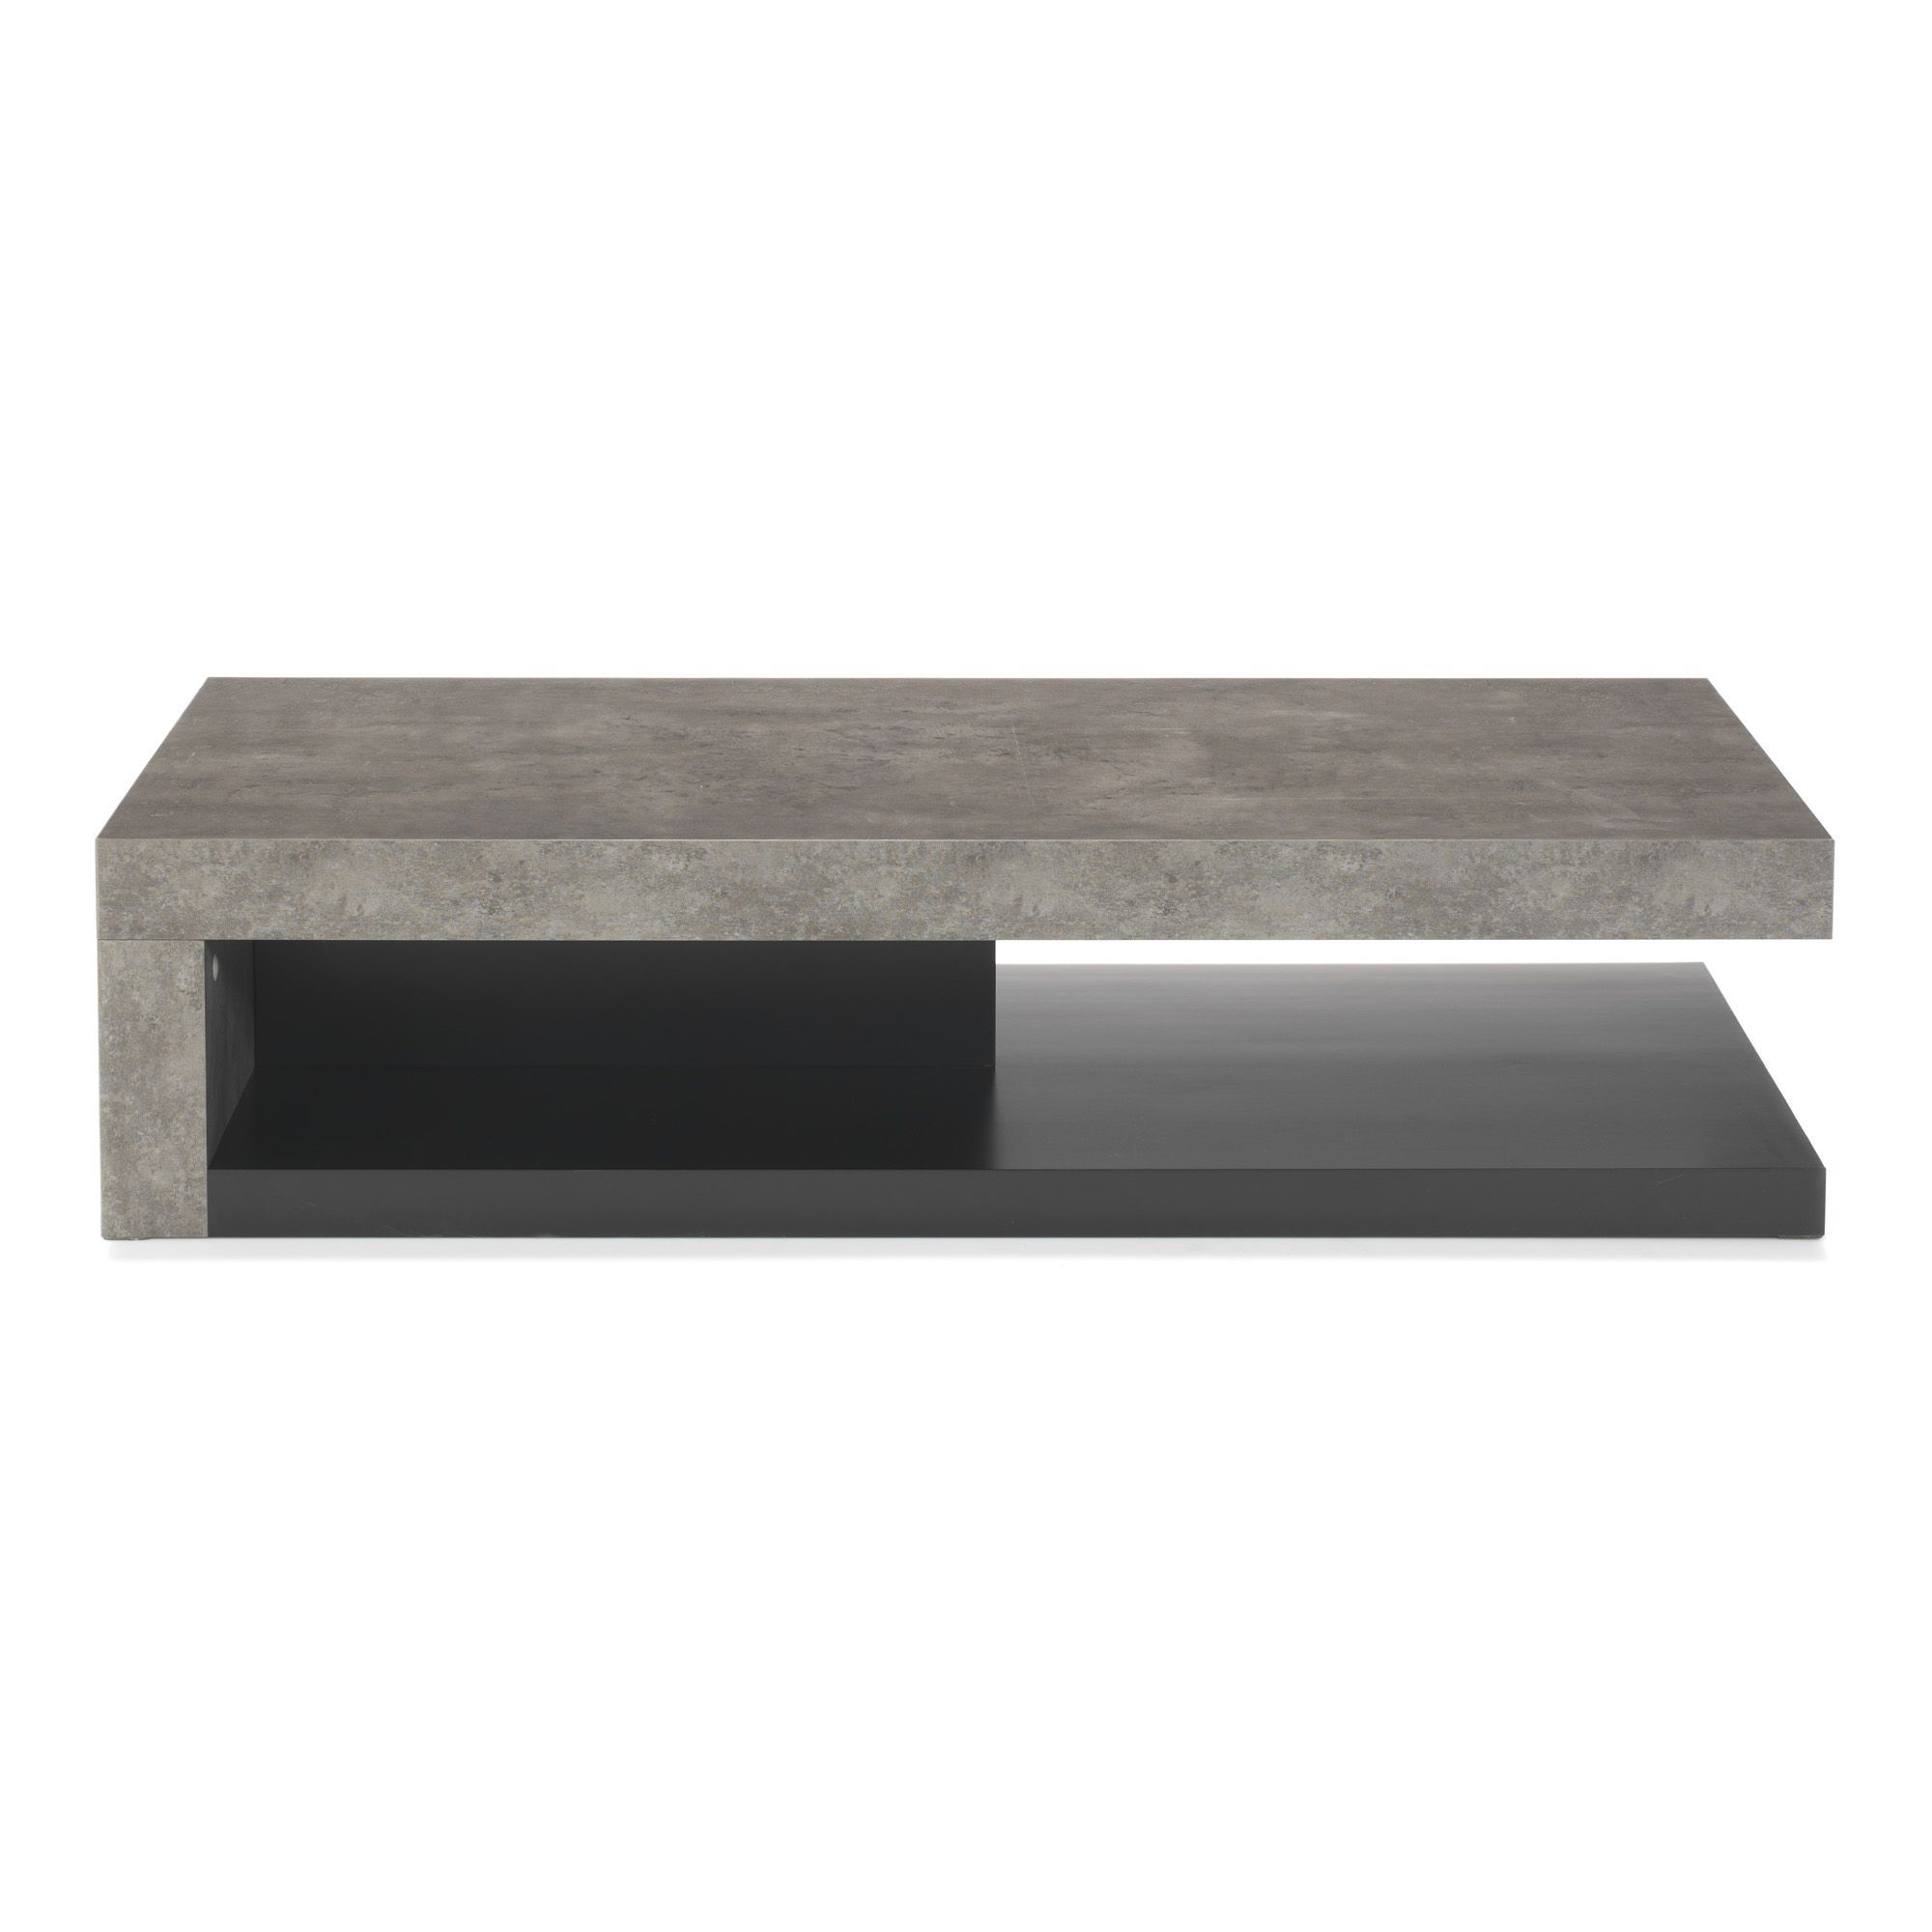 table basse imitation b ton brut gris et noir hilo les tables basses tables basses et. Black Bedroom Furniture Sets. Home Design Ideas